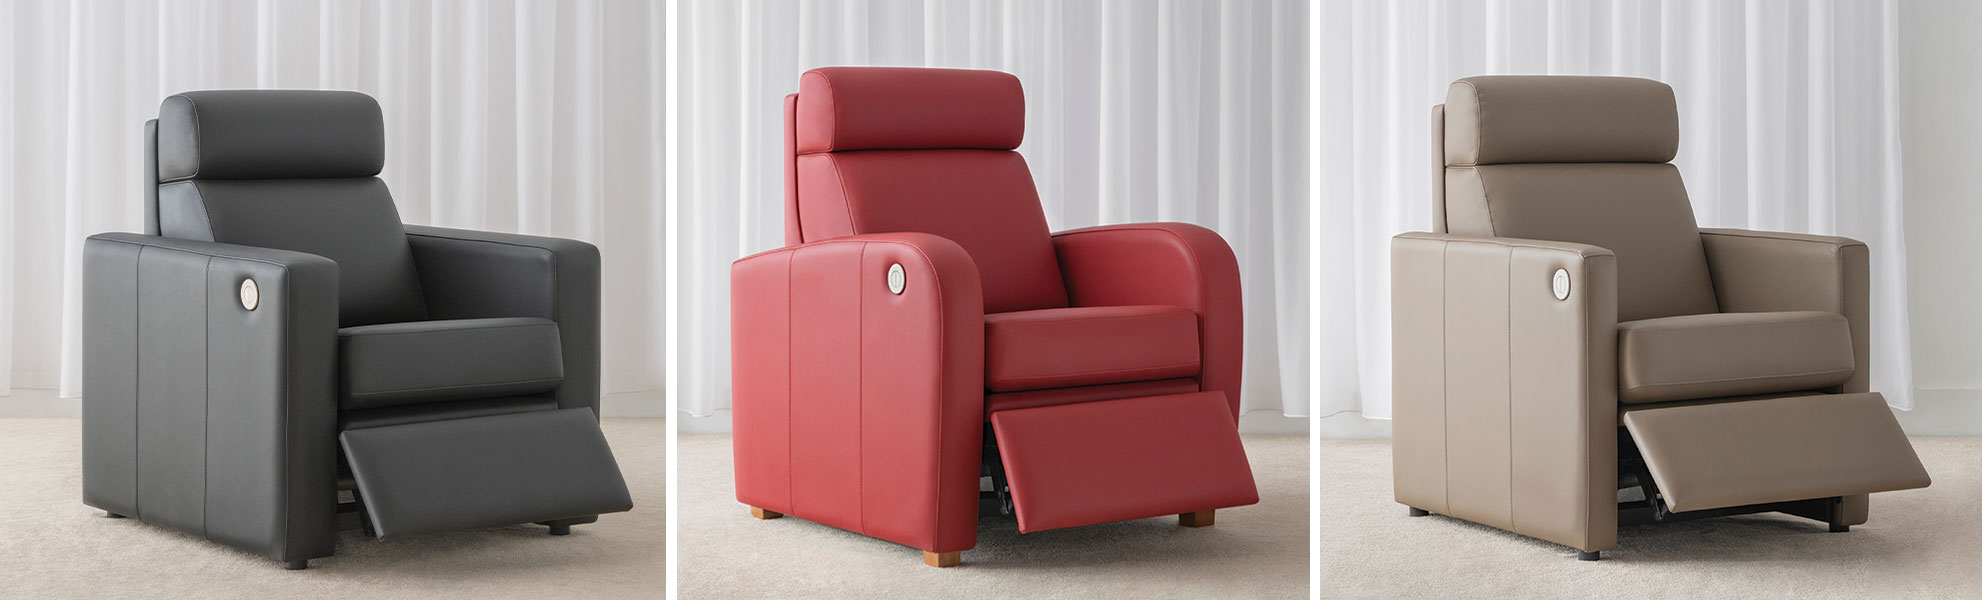 recliner chair variations made in Adelaide